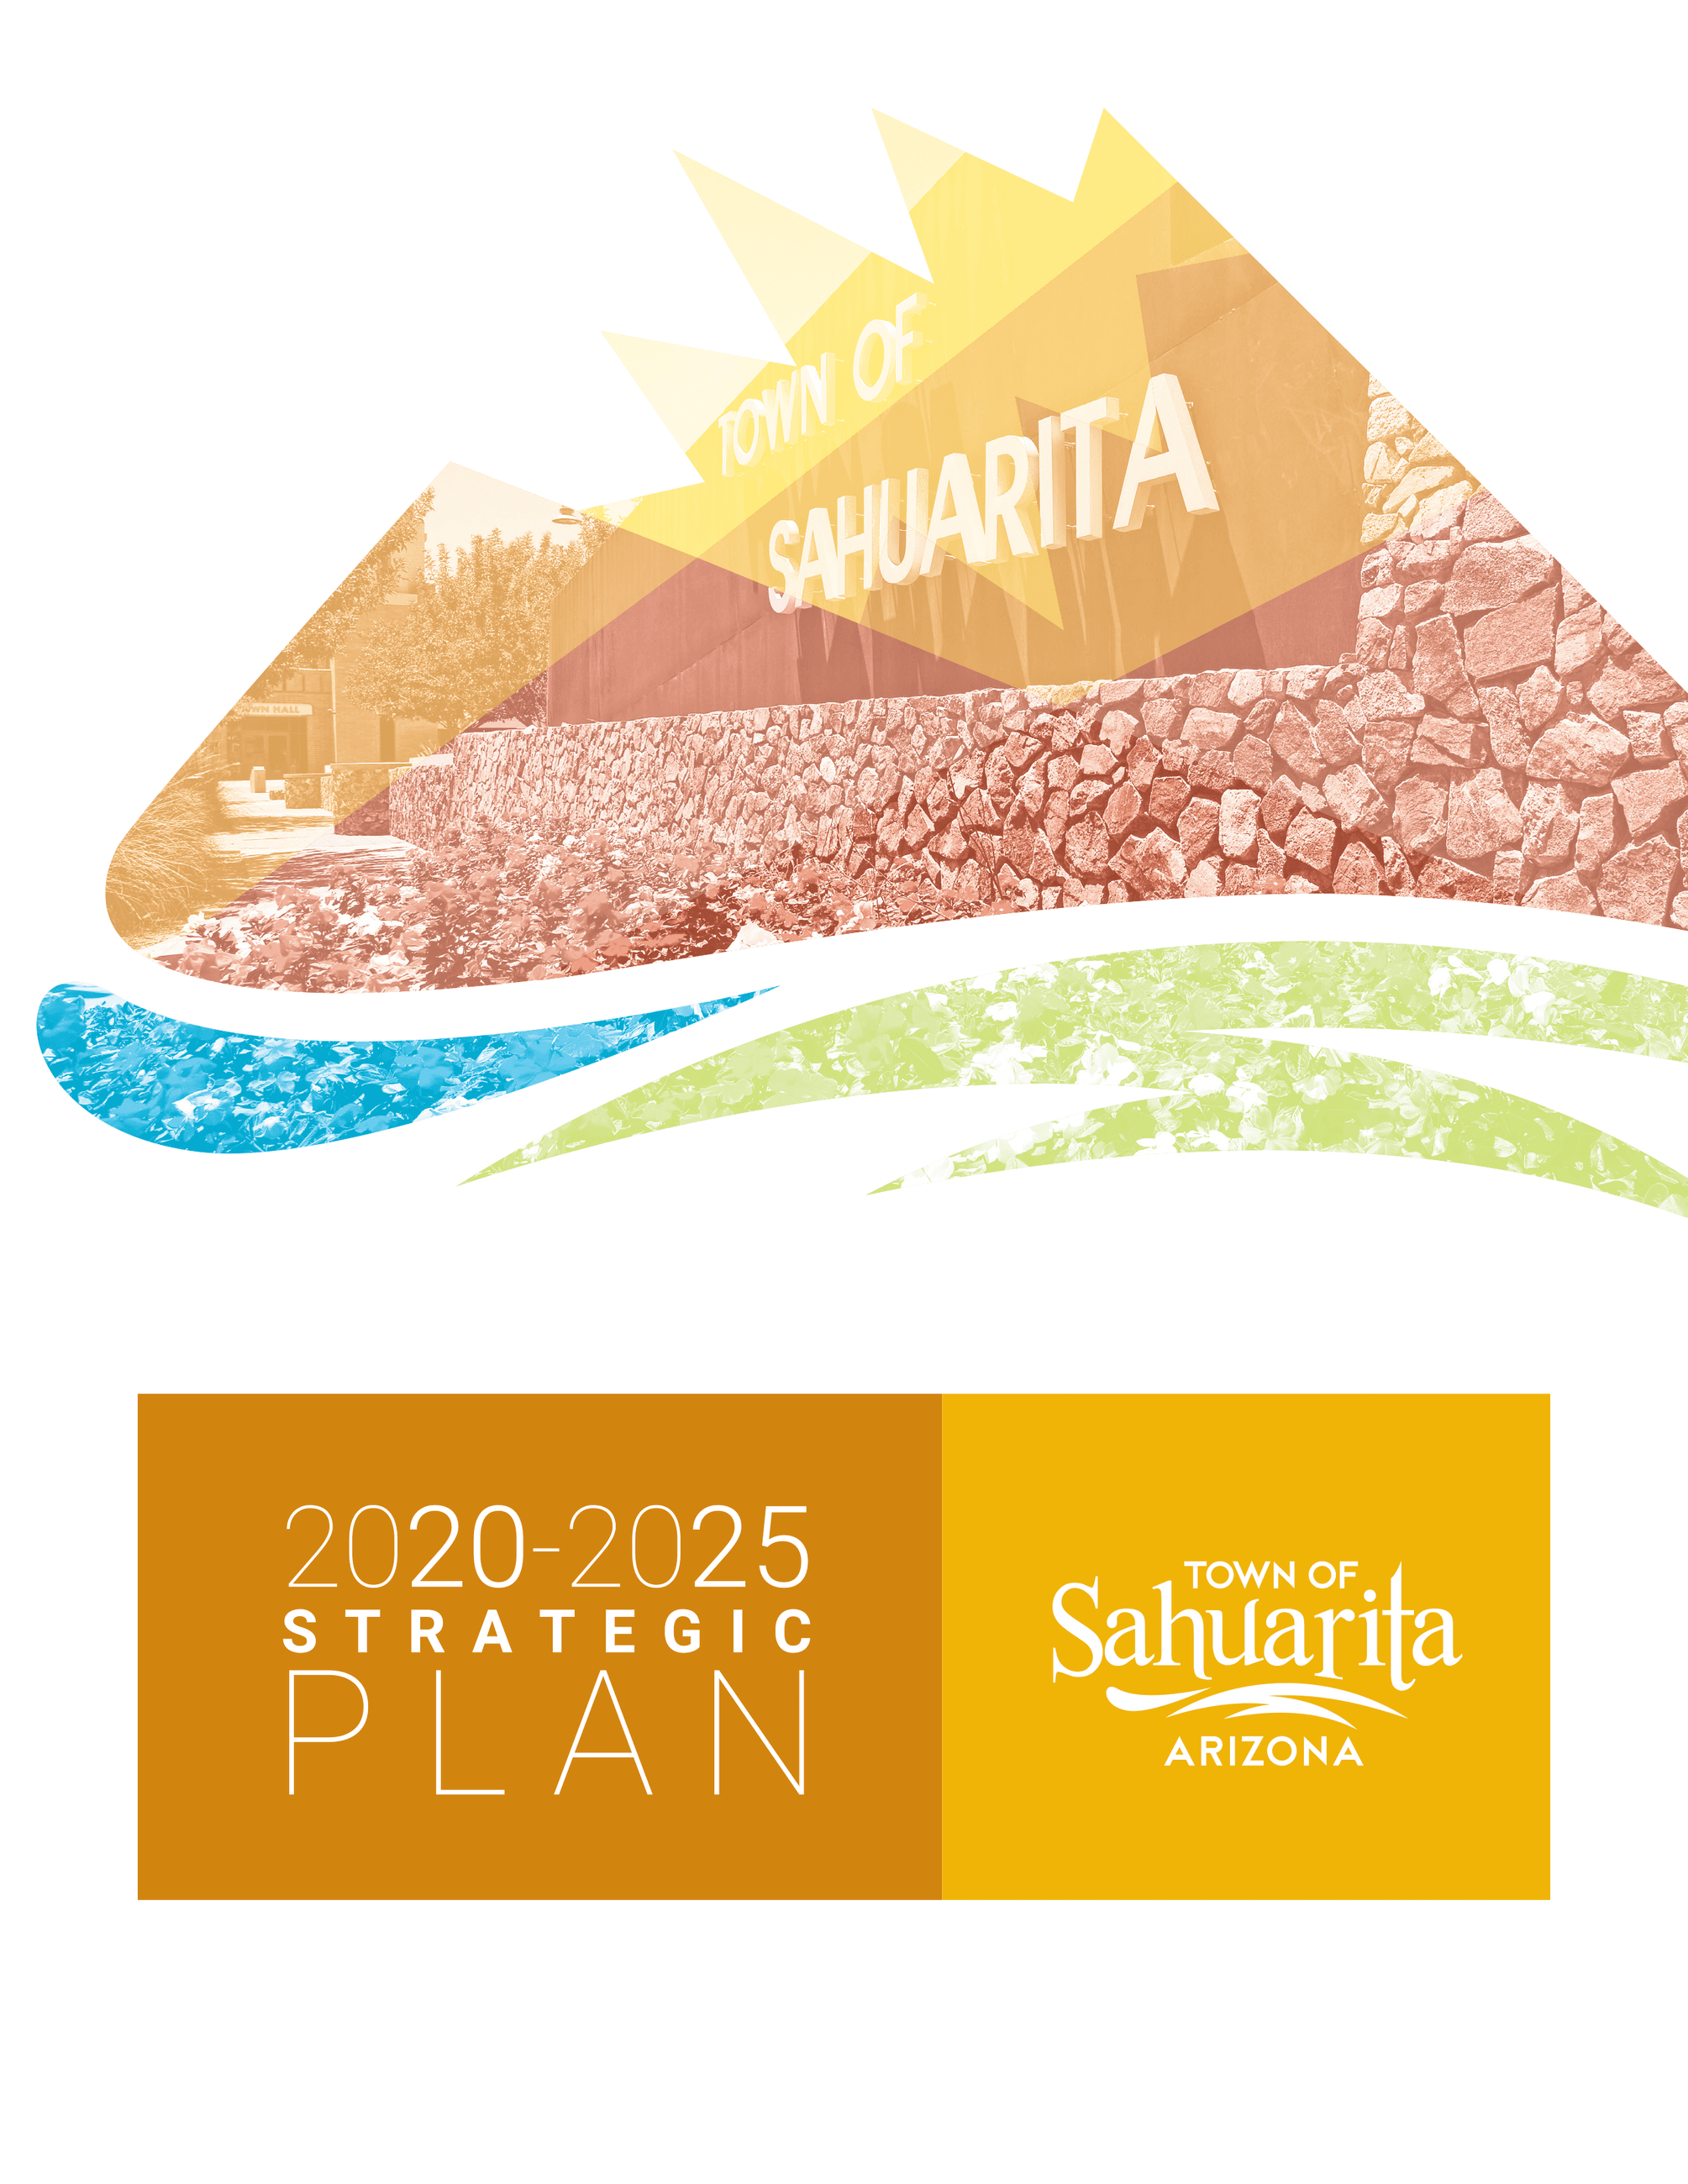 semi opaque mountain logo with town hall sundial faded into background; 2020-2025 strategic plan tow